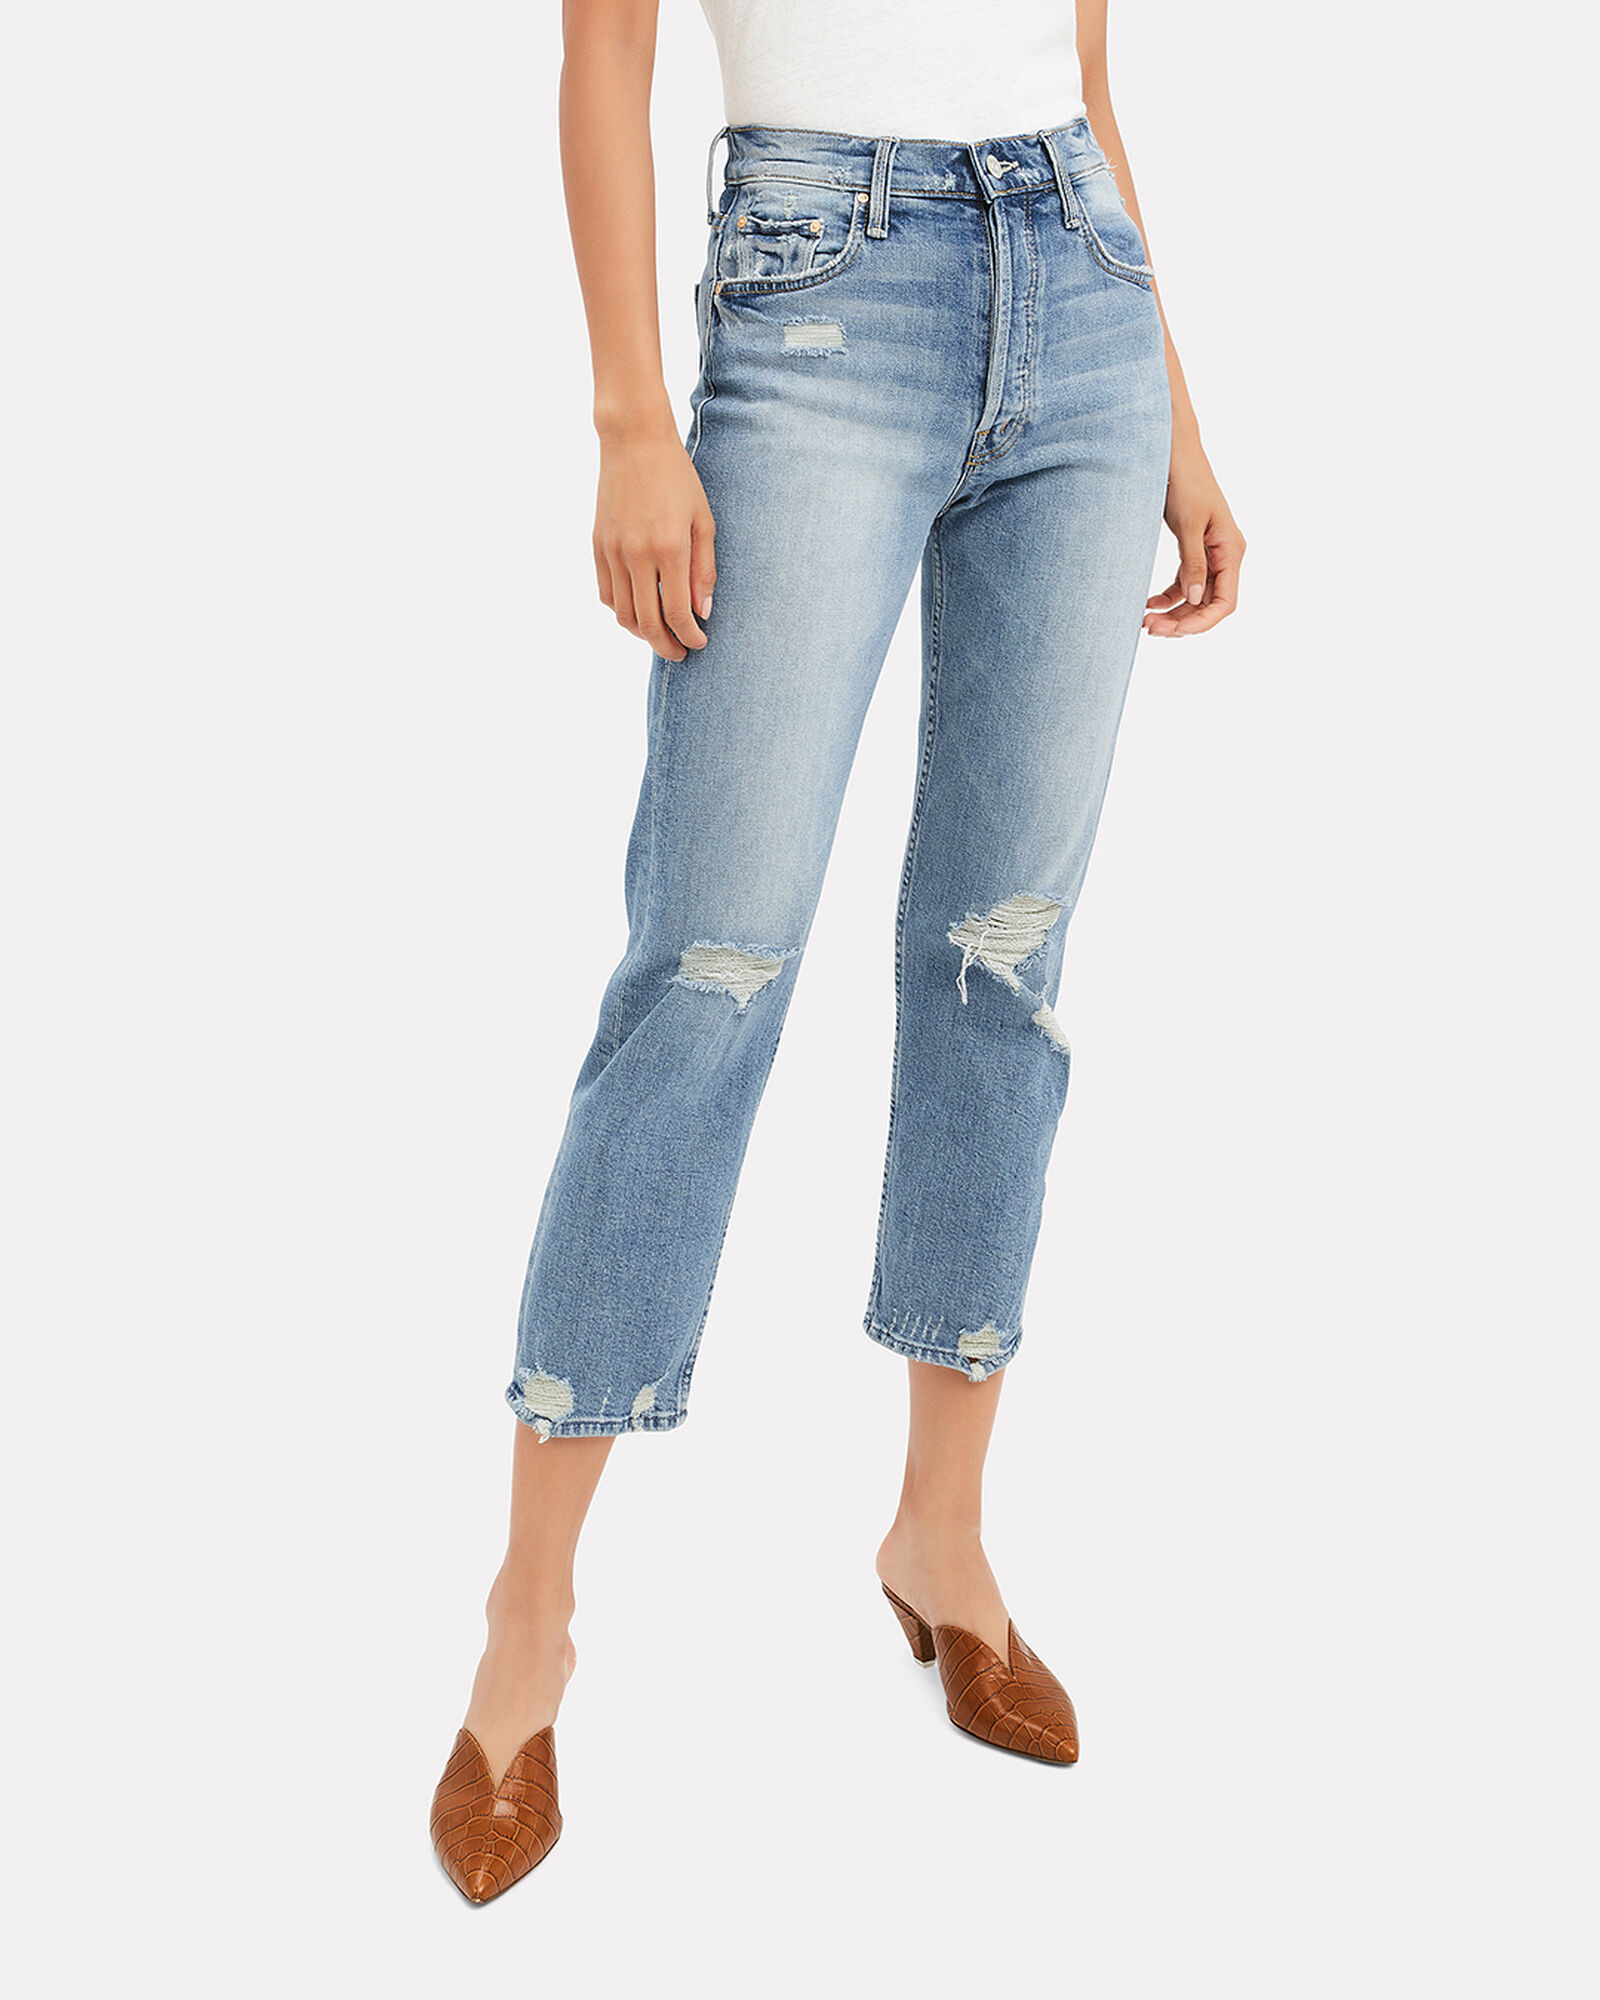 Tomcat Confession Cropped Jeans, BLUE-LT, hi-res